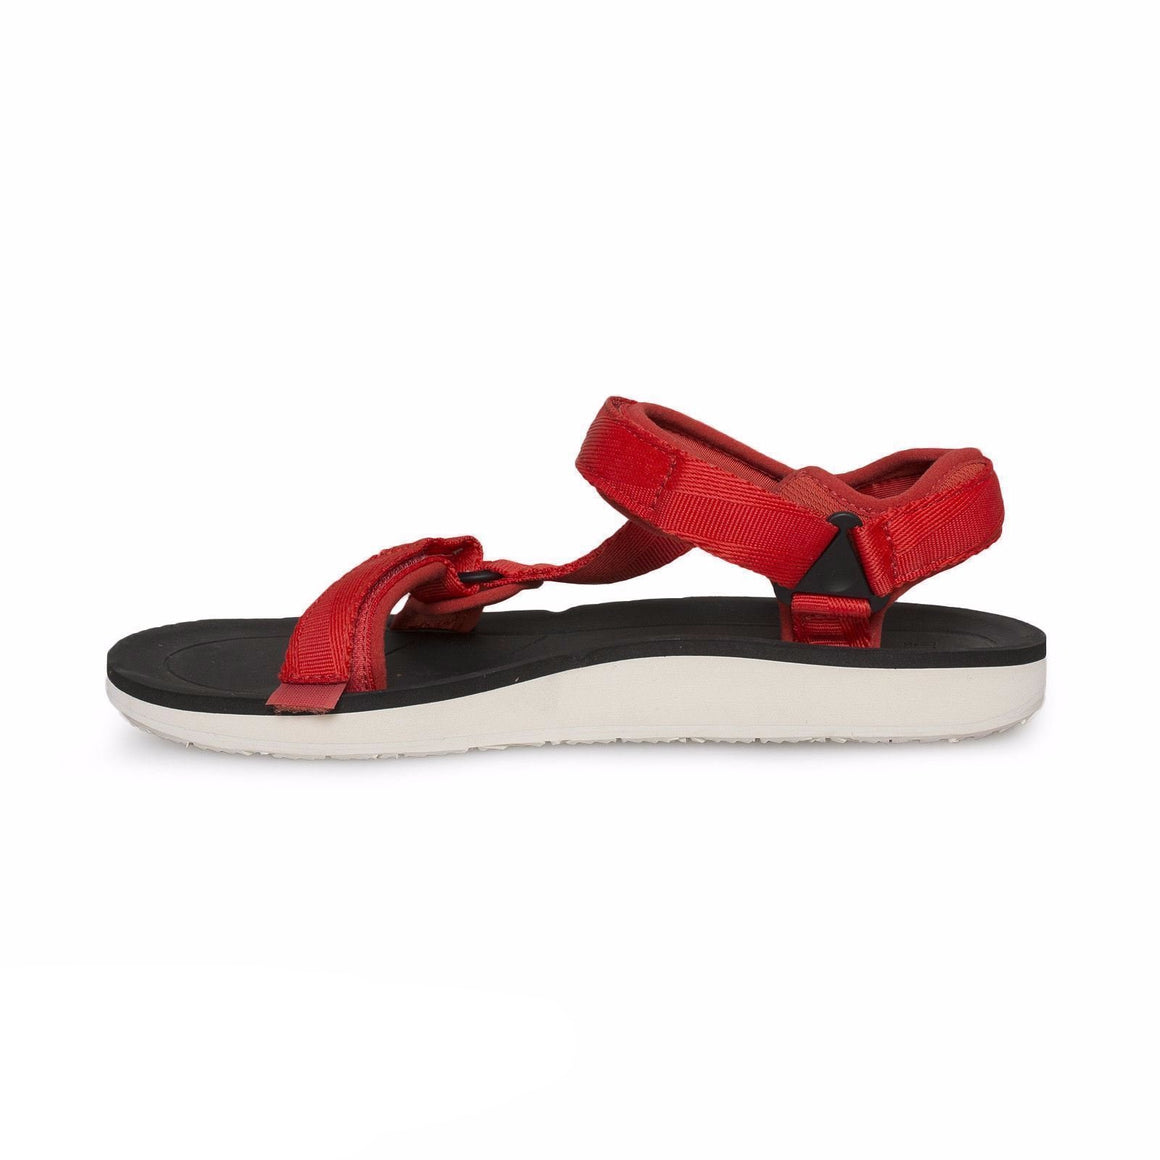 Teva Original Universal Premier Red Sandals